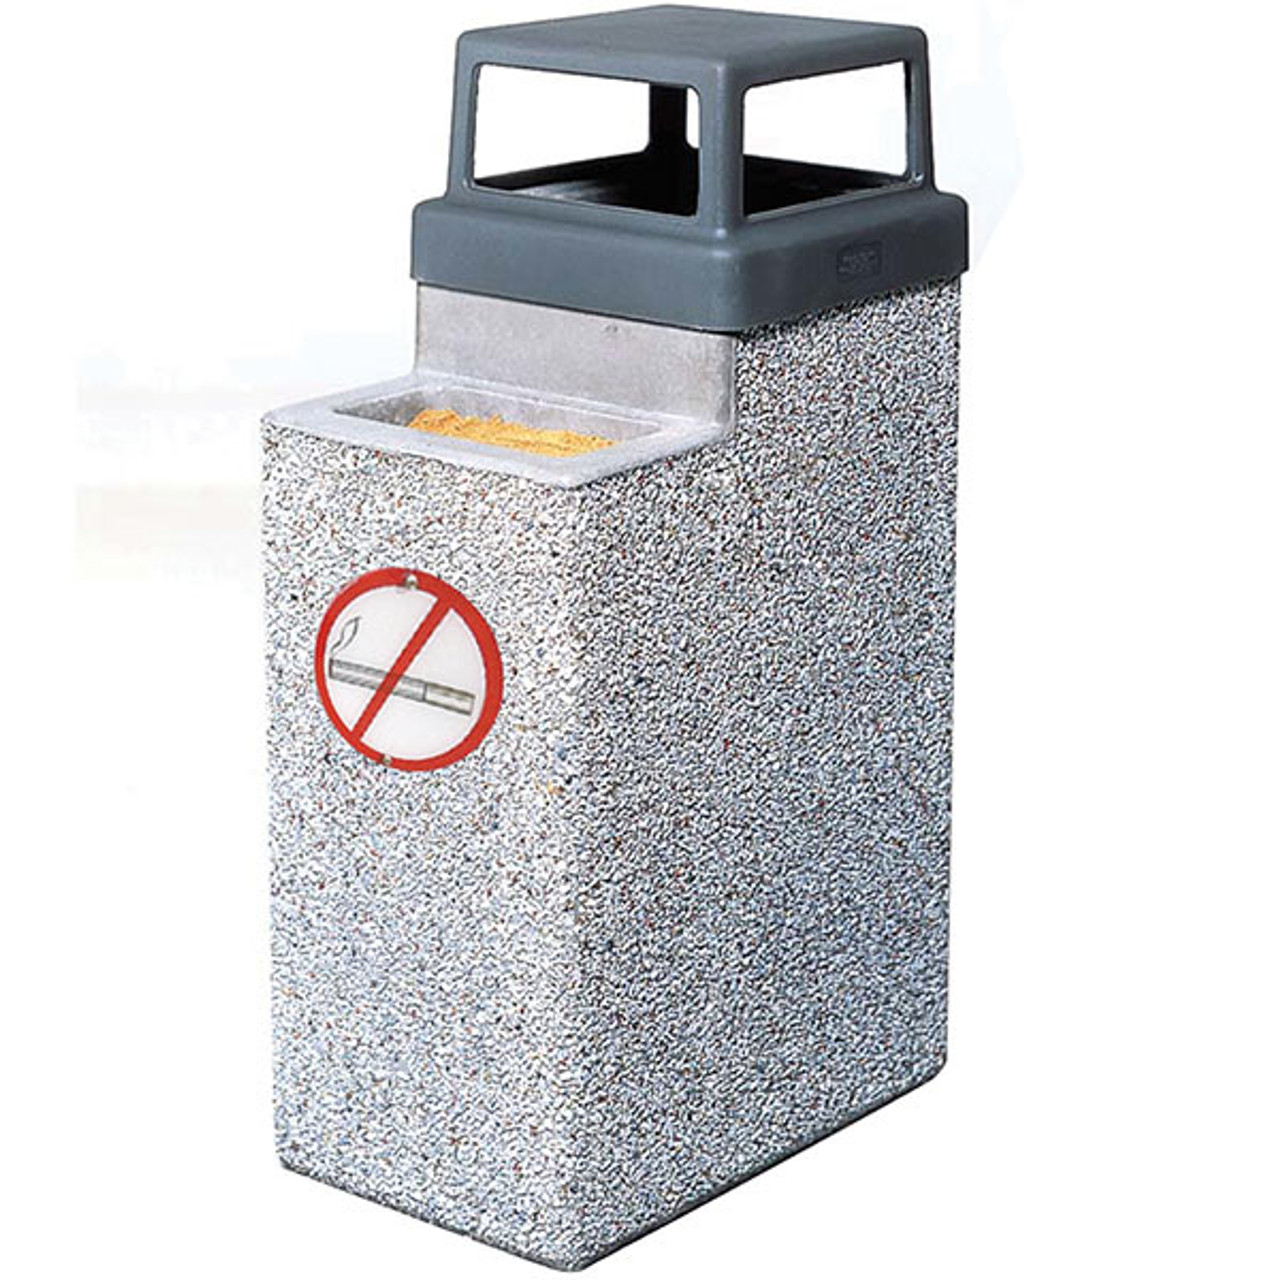 10 Gallon Concrete Ash Trash Outdoor Waste Container TF2075 with Logo